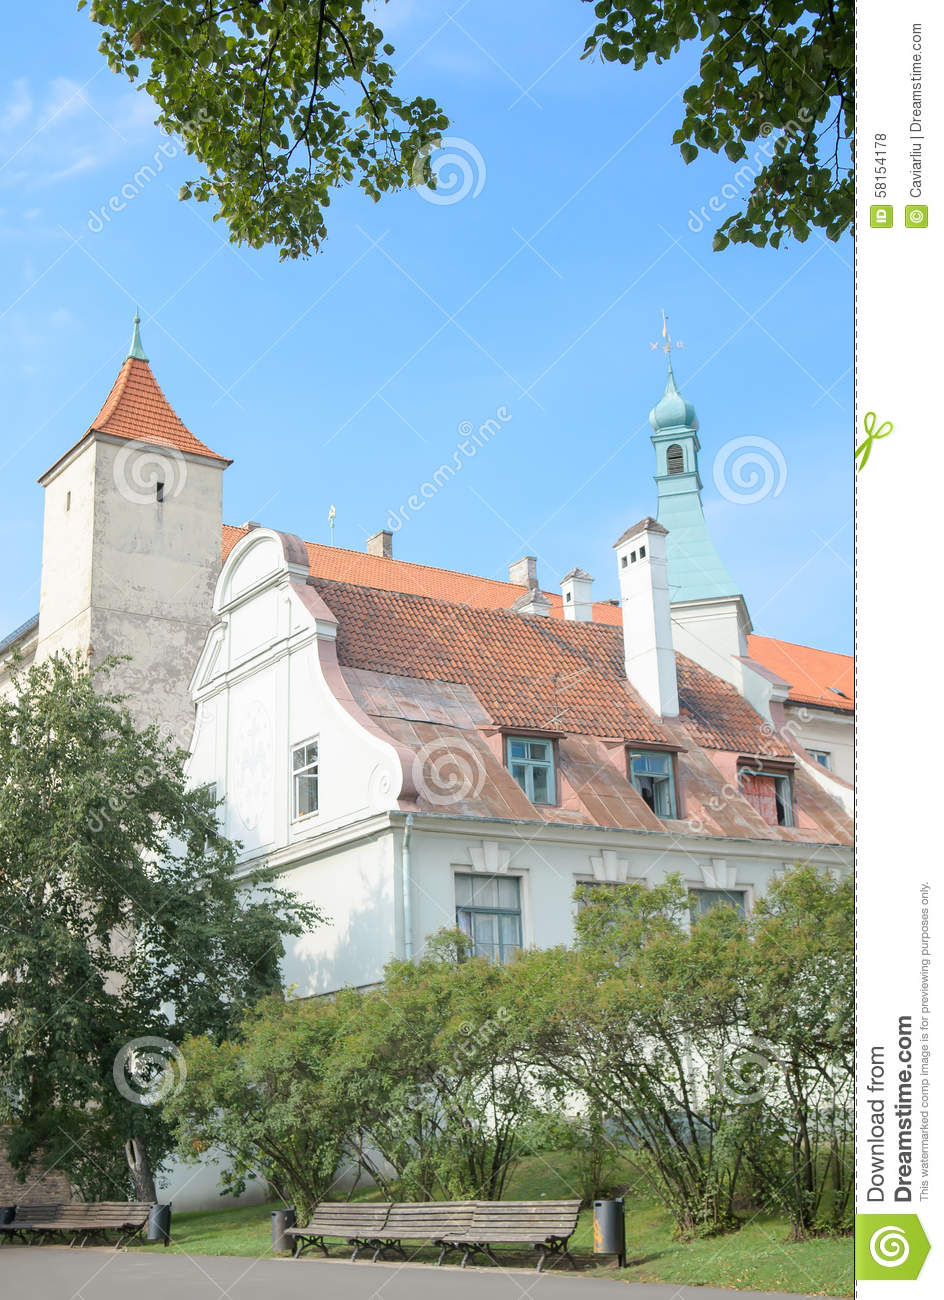 Riga, Latvia - August 10, 2014 - The picturesque view of the Riga Castle(the residence of President of Latvia) with Virgin of